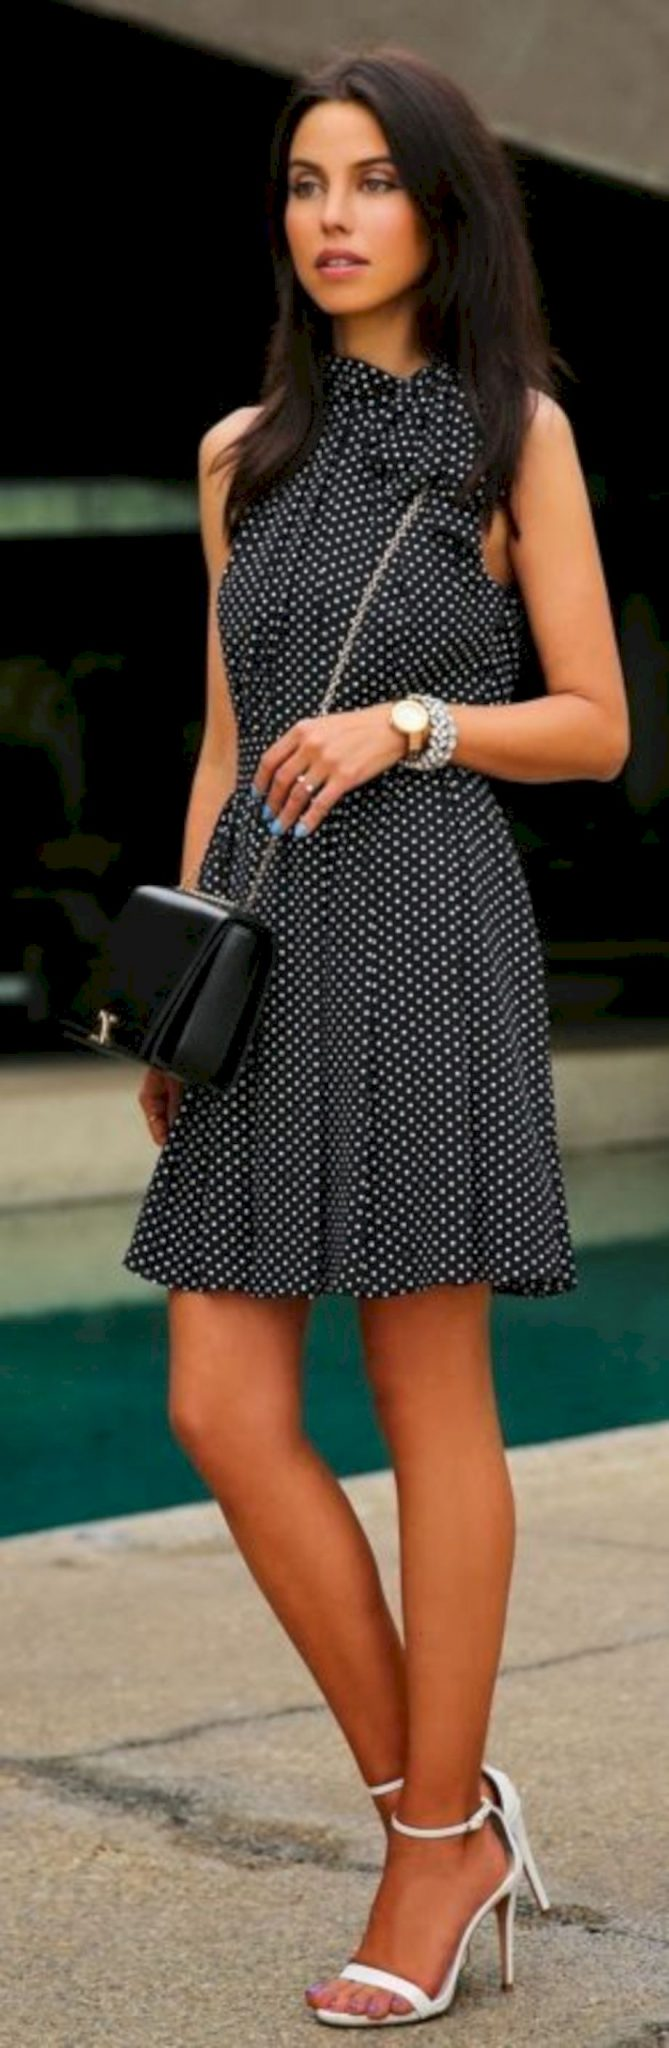 Polkadot short dress 31